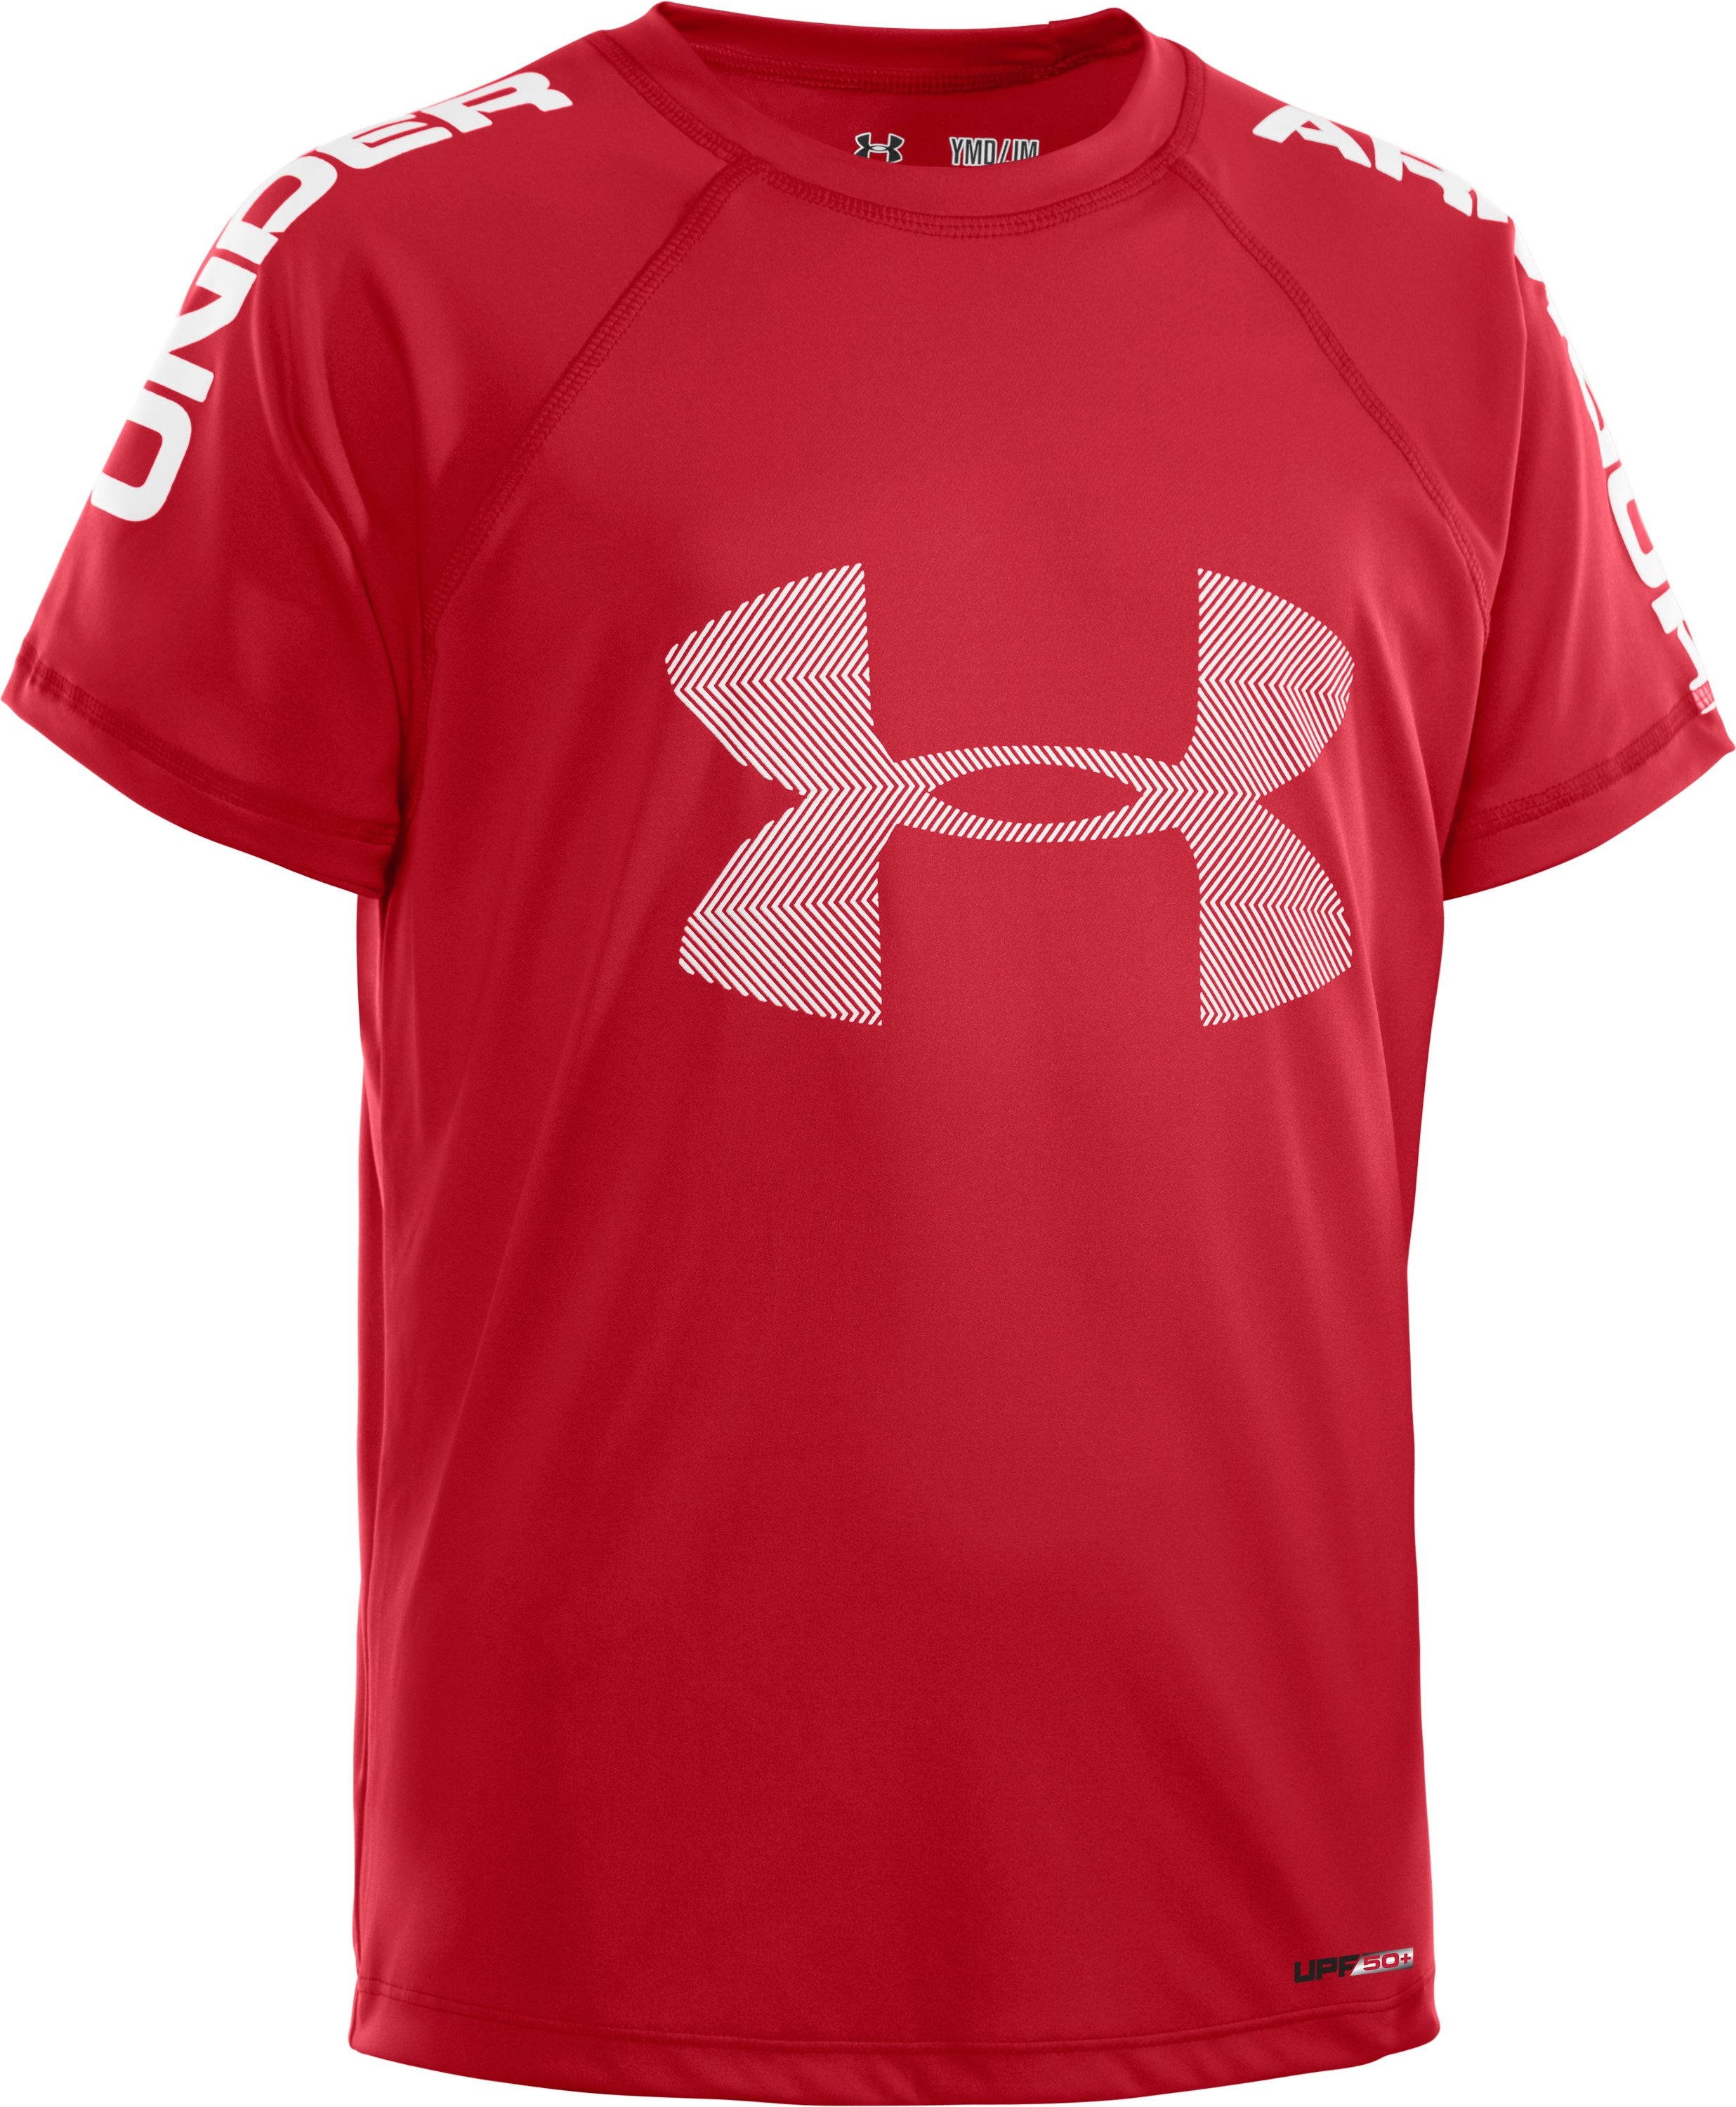 Boys' UA Ripping Sun-Activated Short Sleeve, Red, zoomed image